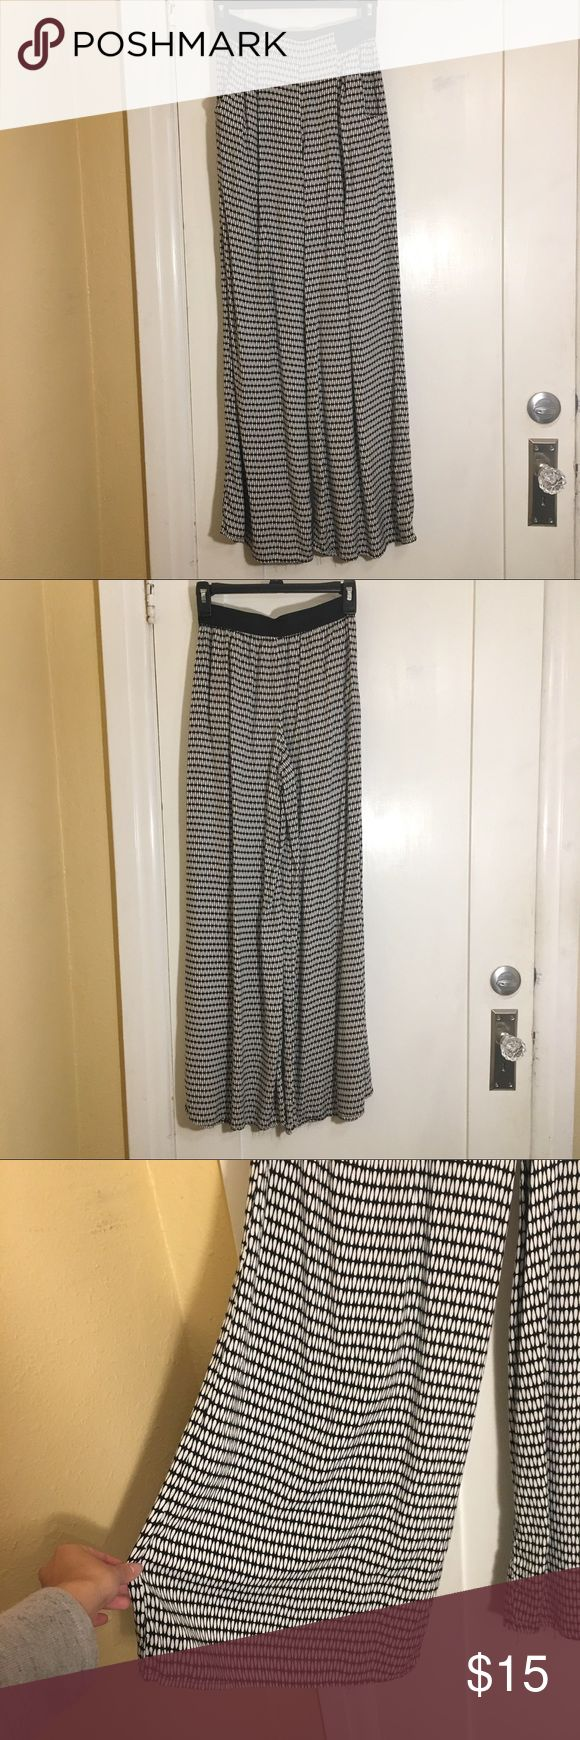 Target Printed Palazzo Pants Black and white printed Palazzo wide legged flowy pants with elastic waistband and pockets. Size small. Price is firm unless bundled. Xhilaration Pants